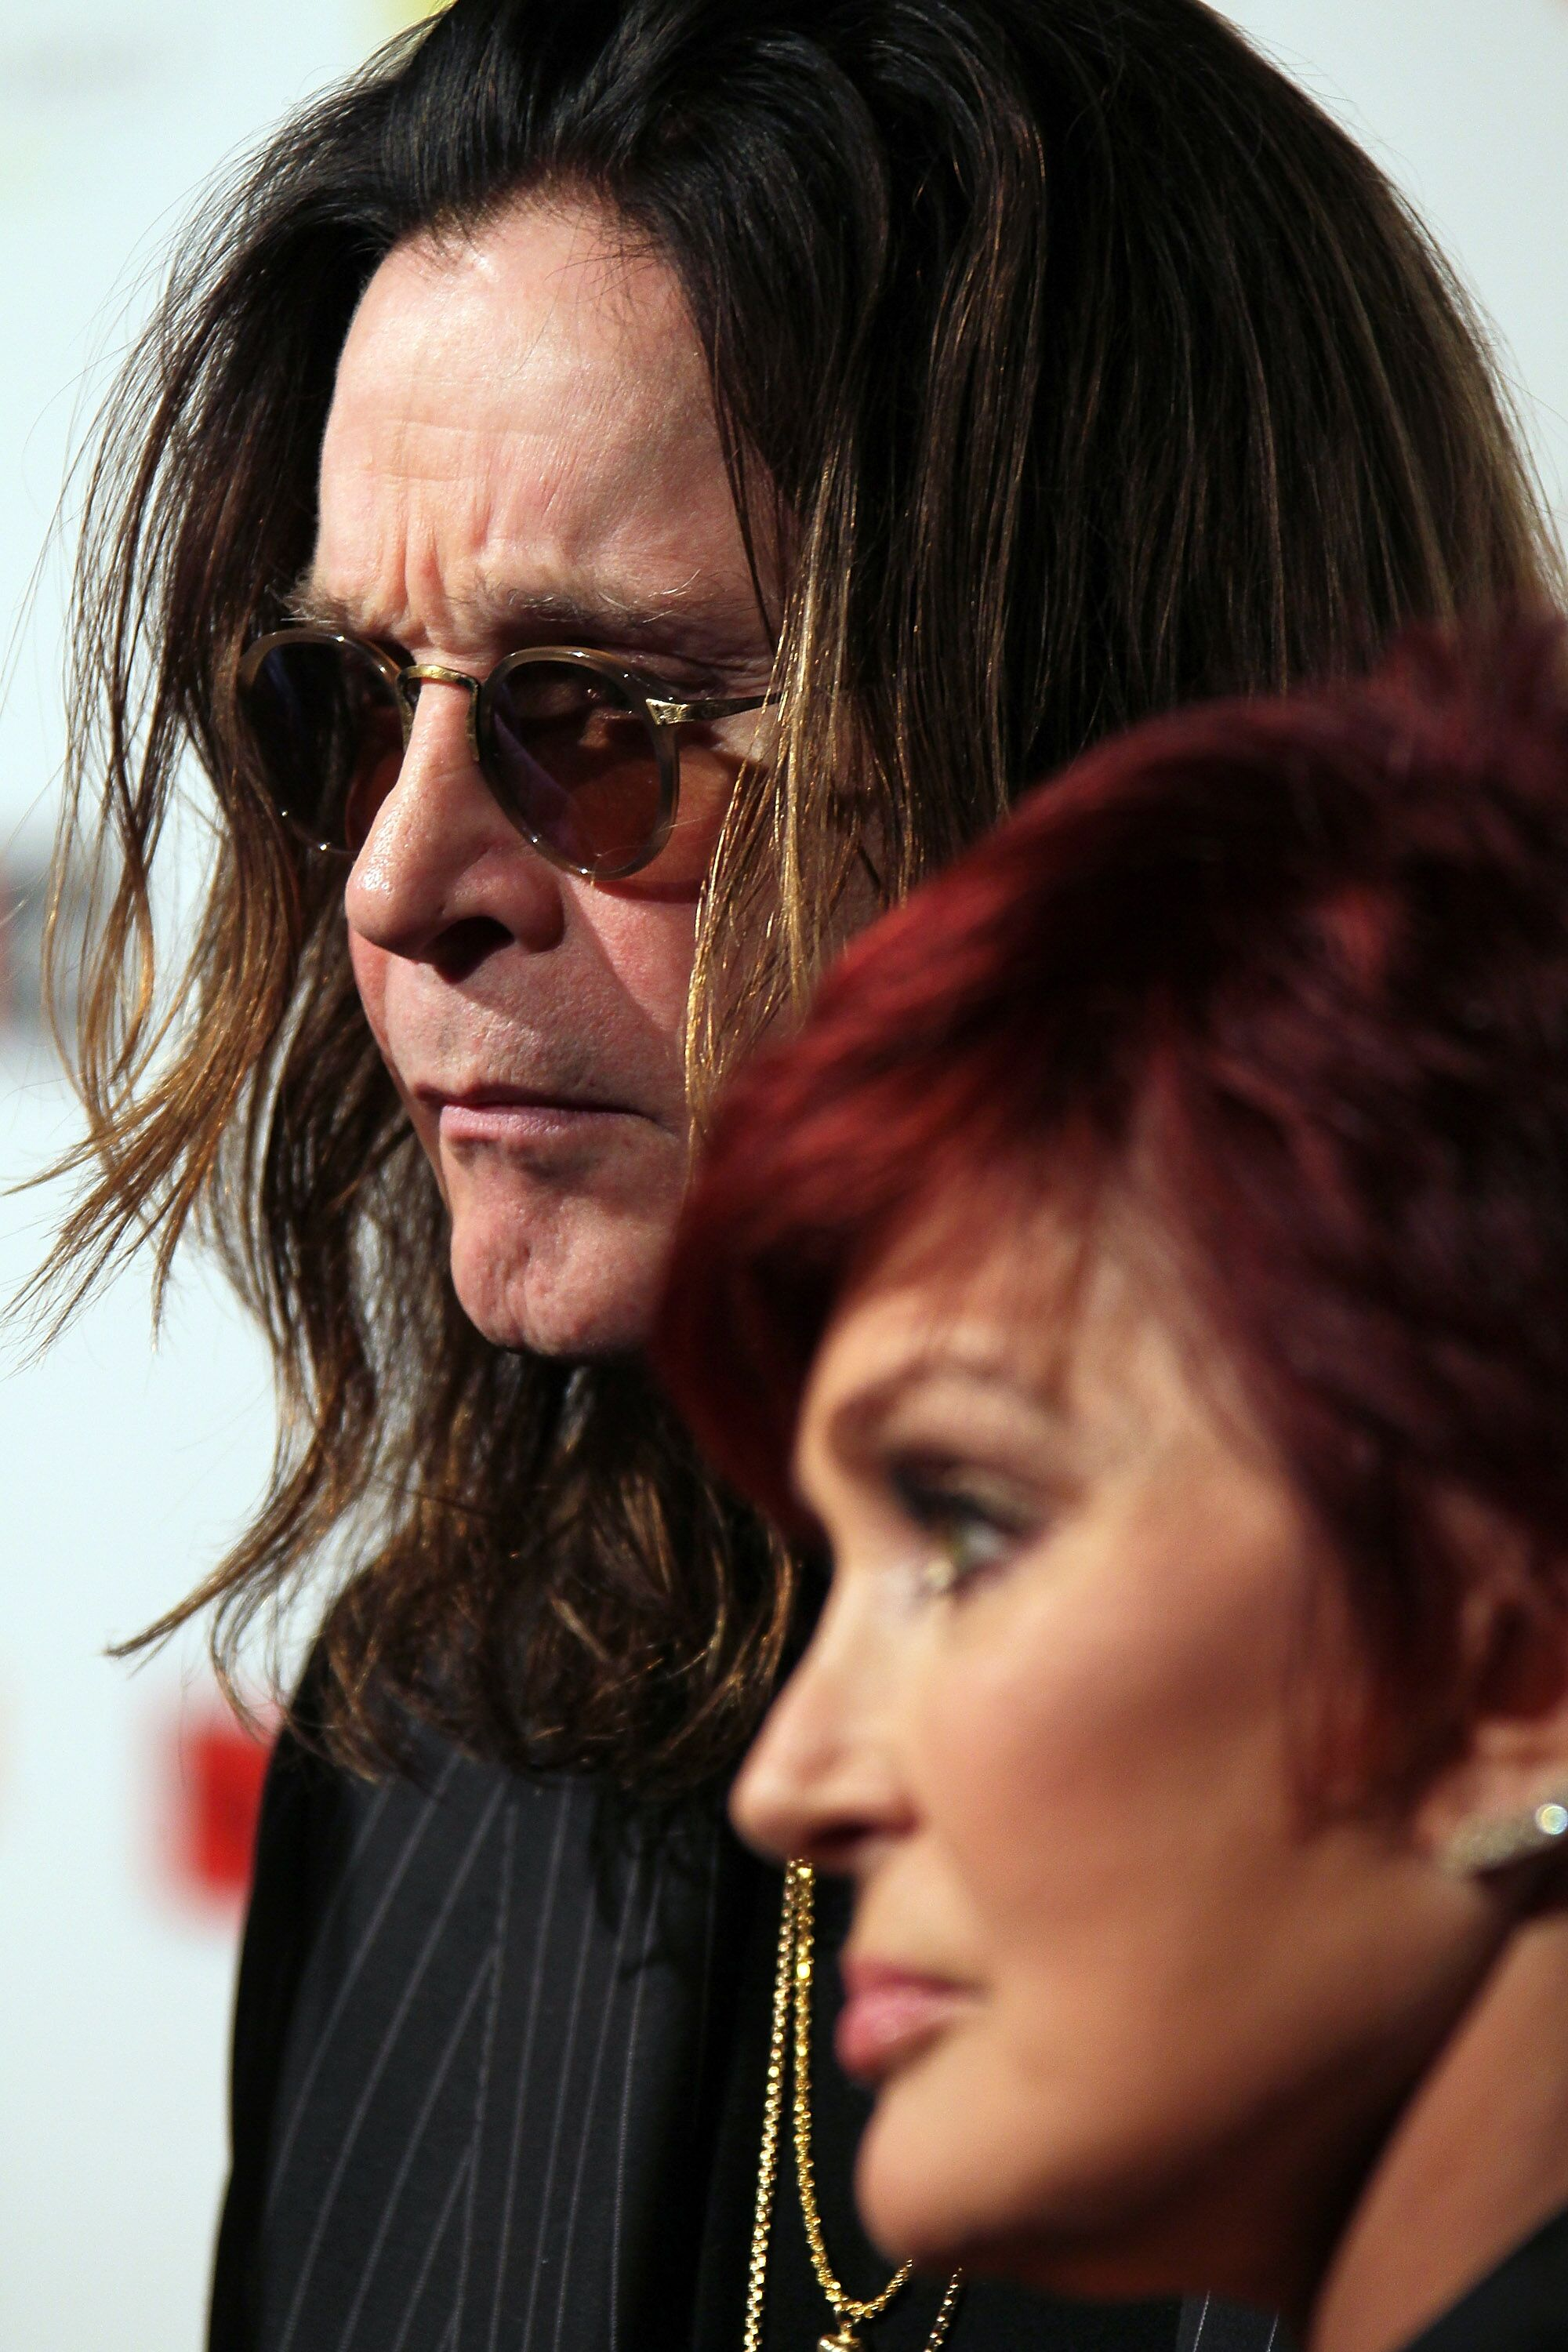 Ozzy Osbourne and Sharon Osbourne attend the 10th Annual Classic Rock Awards. | Source: Getty Images